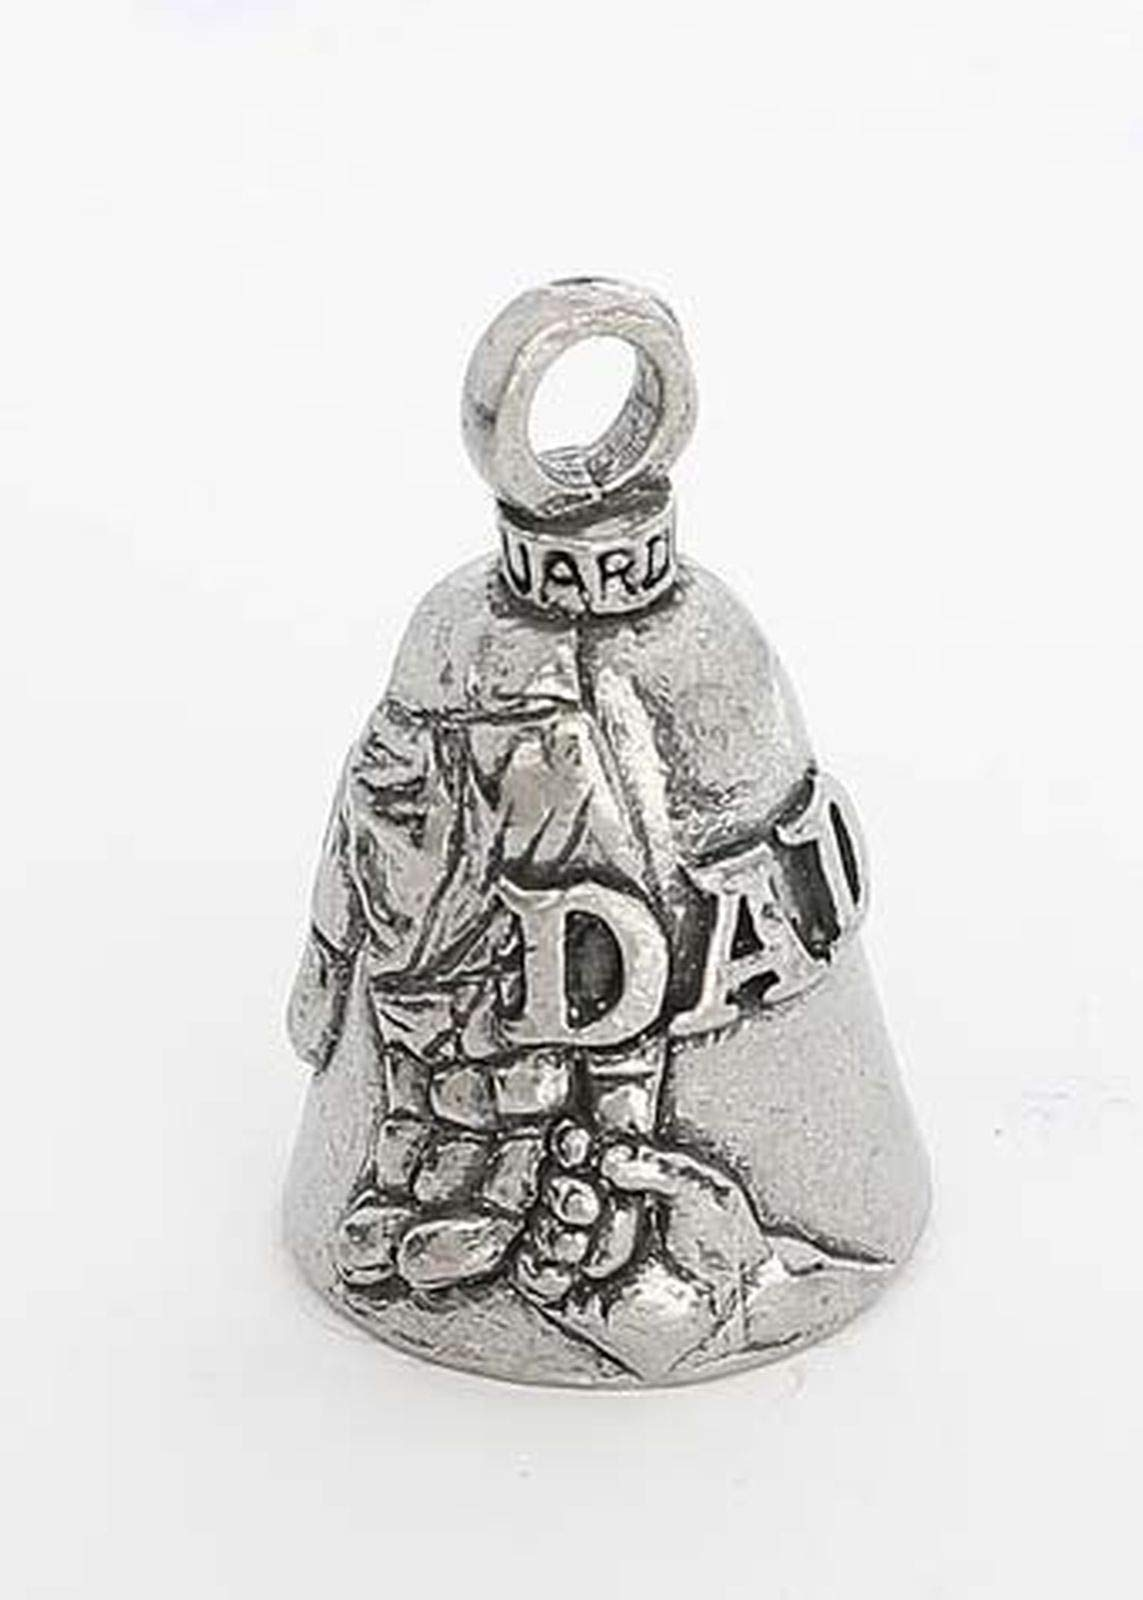 Guardian® Bell DAD Harley Biker Bell Ride to Live